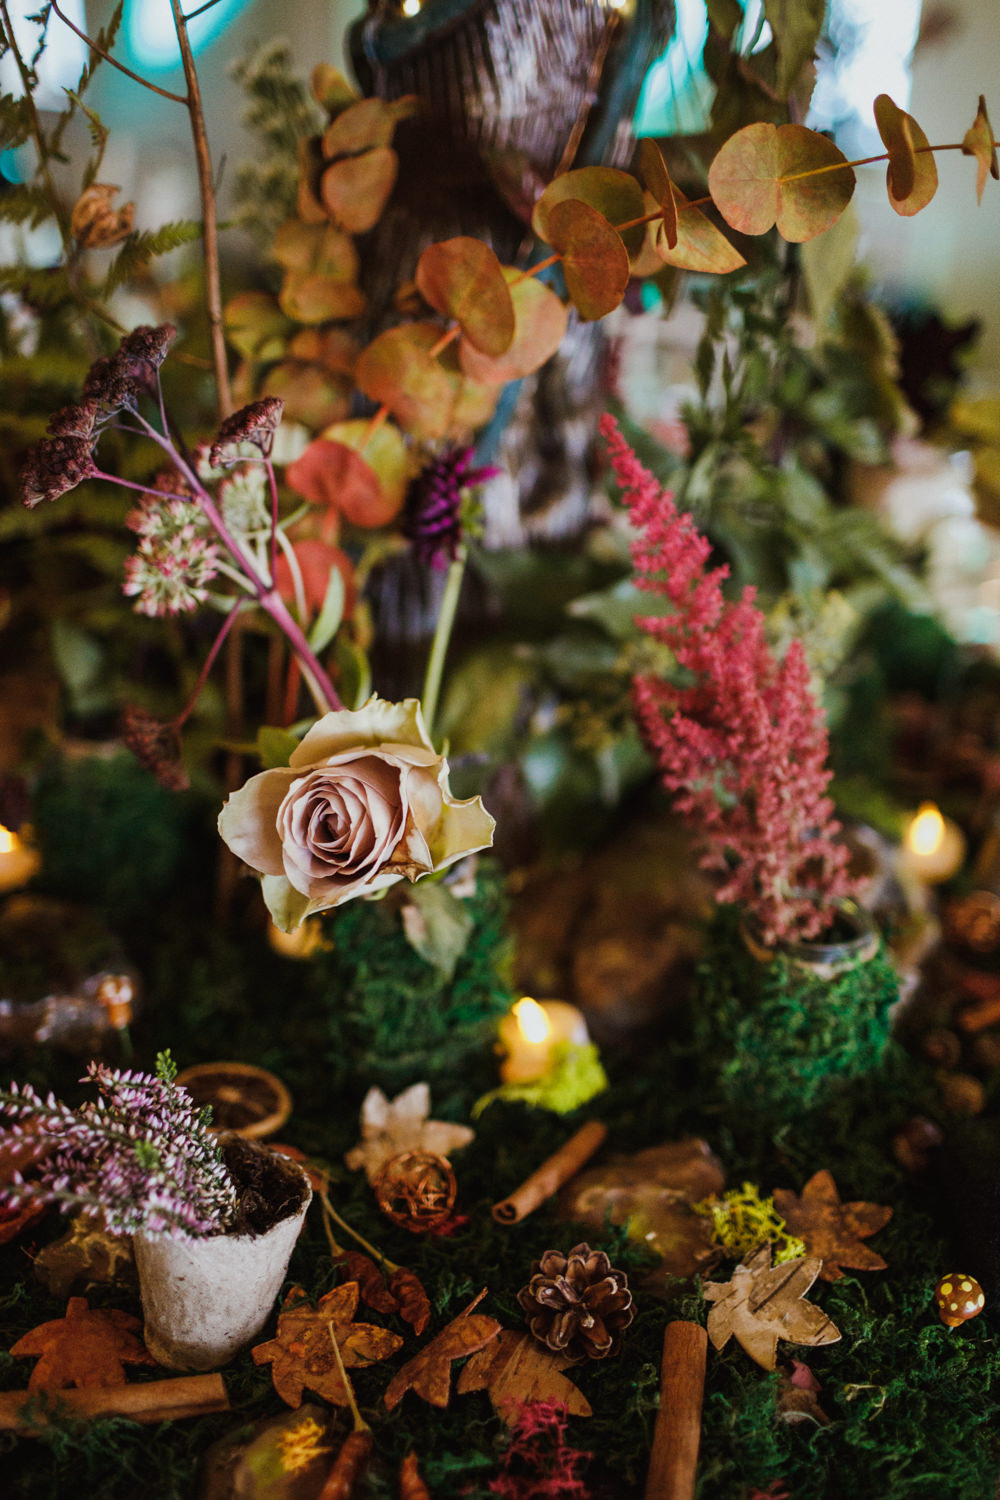 Centrepiece Decor Greenery Foliage Autumn Autumnal Flowers Moss Pine Cones Leaves Ox Pasture Hall Wedding Photography34